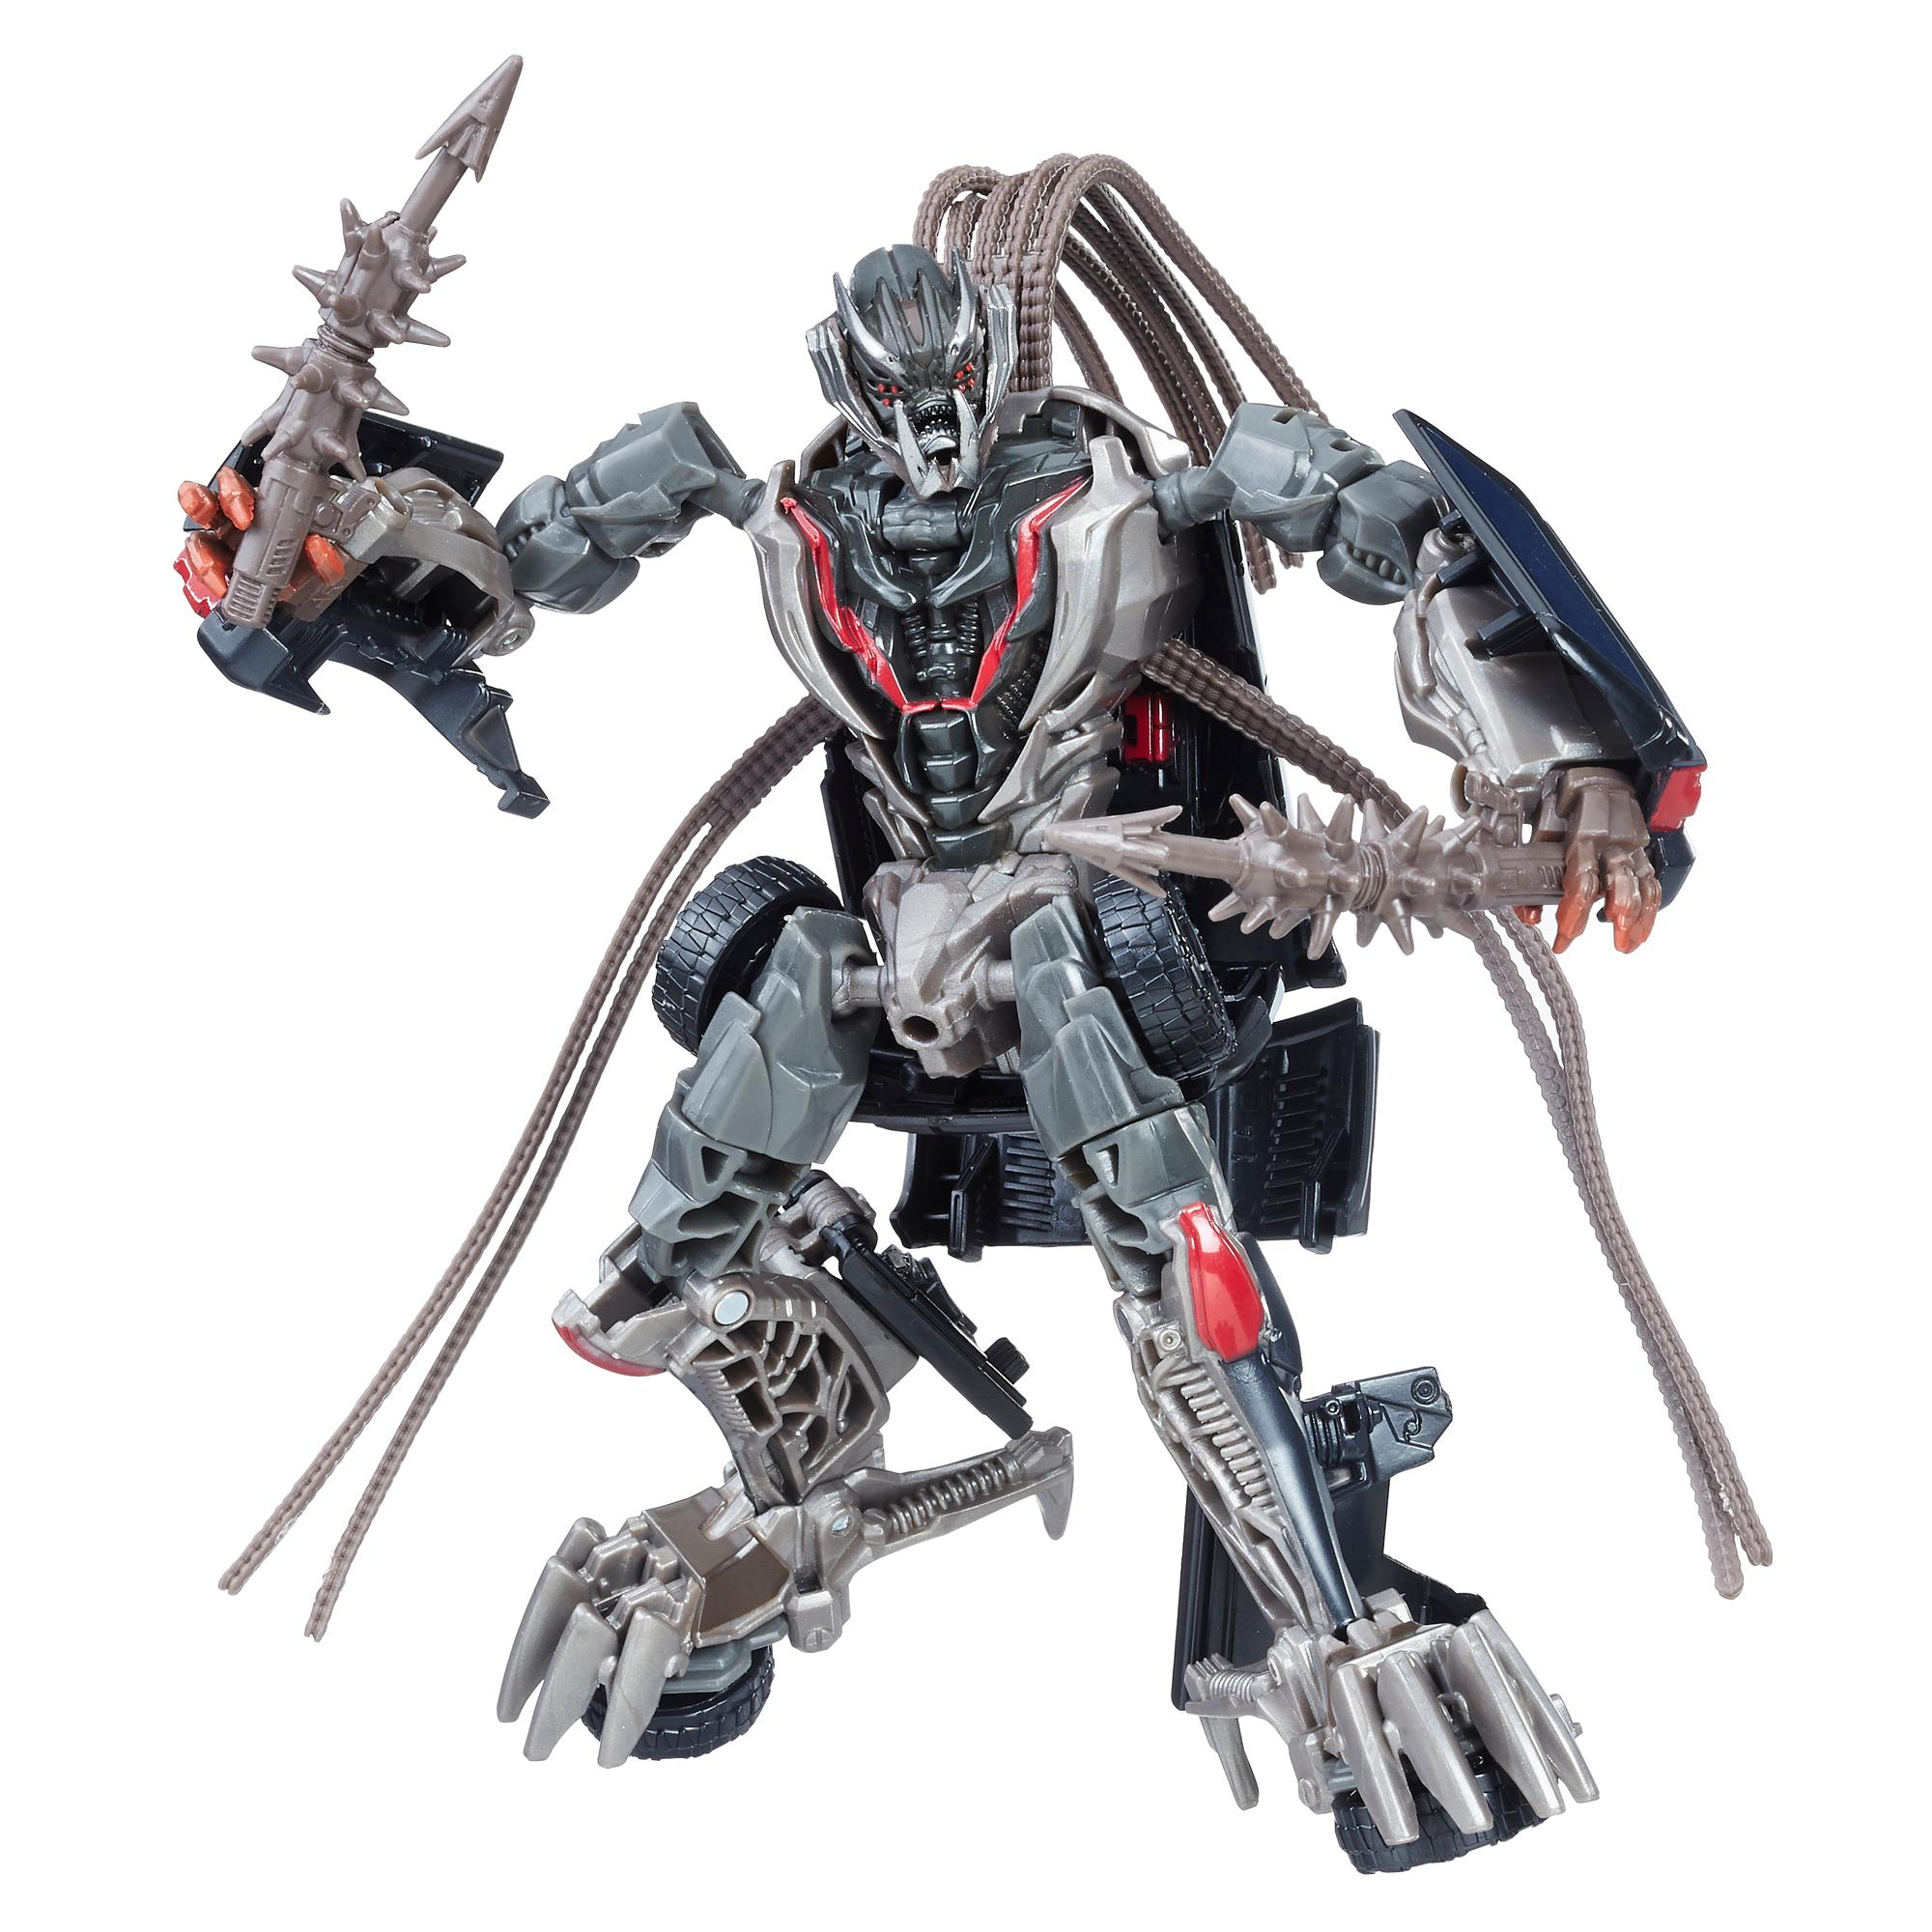 TRANSFORMERS GENERATION STUDIO SERIES DELUXE CROWBAR